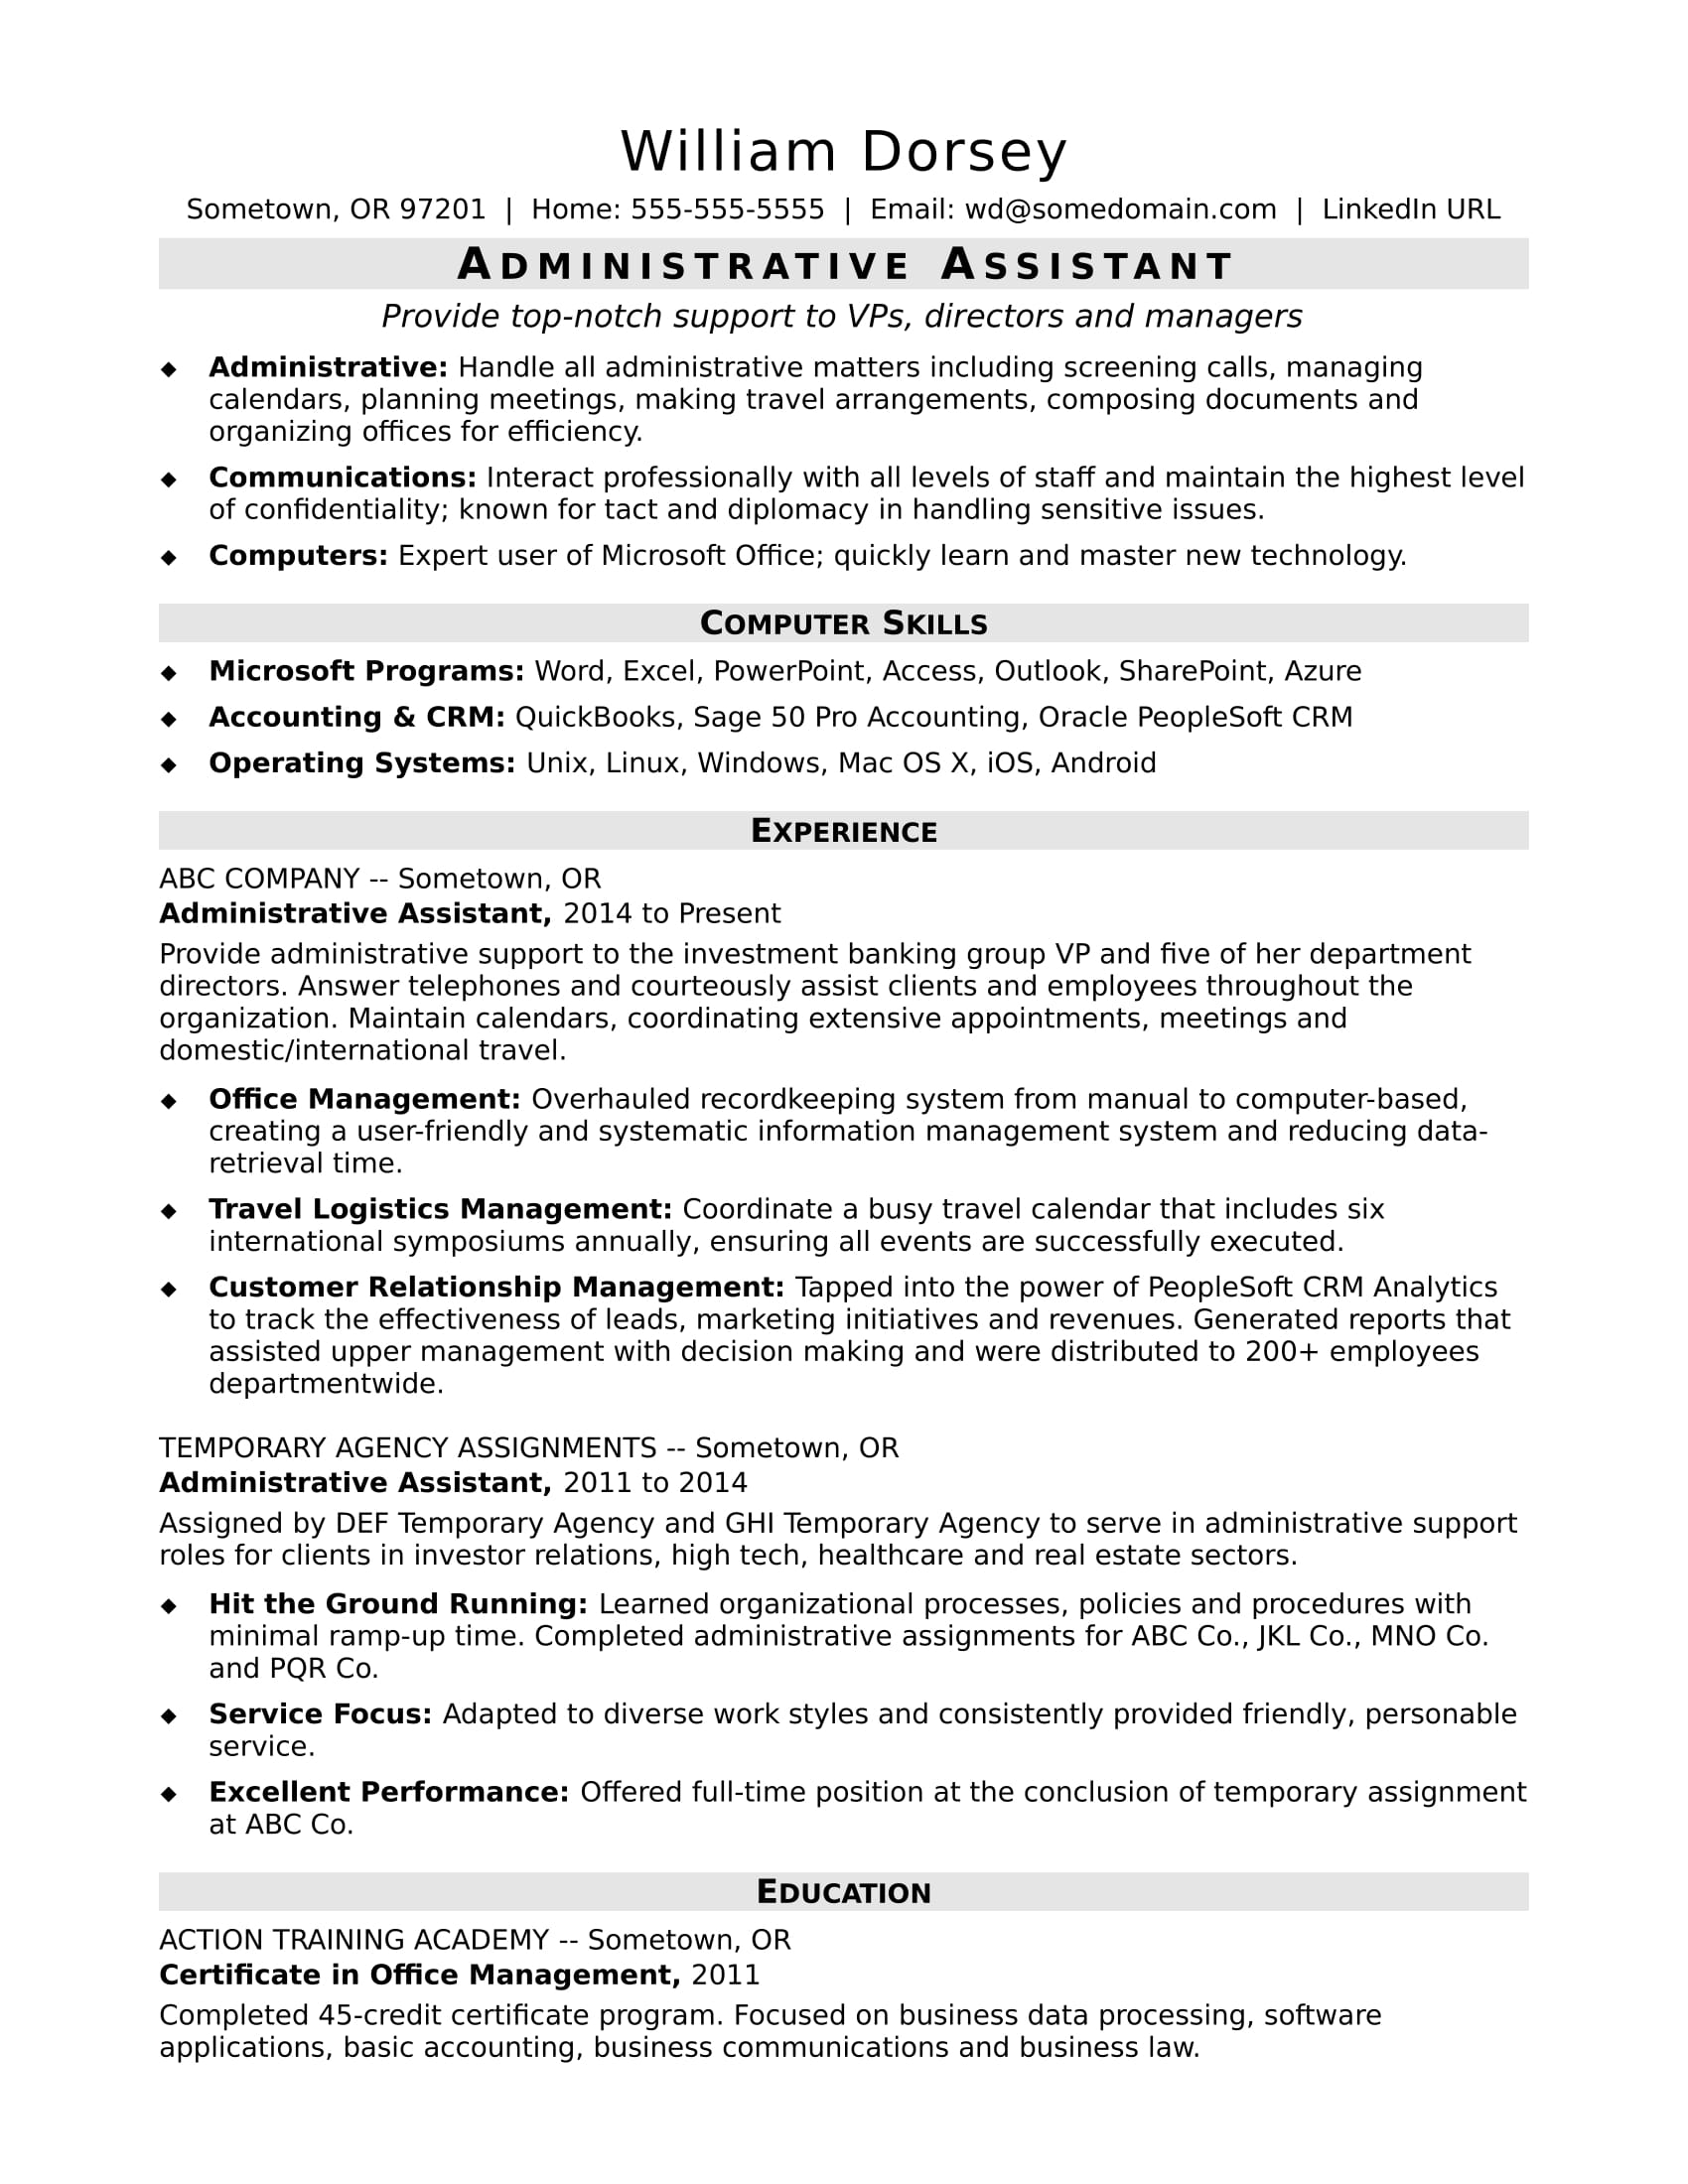 midlevel administrative assistant resume sample monster accomplishments for summary Resume Administrative Assistant Accomplishments For Resume